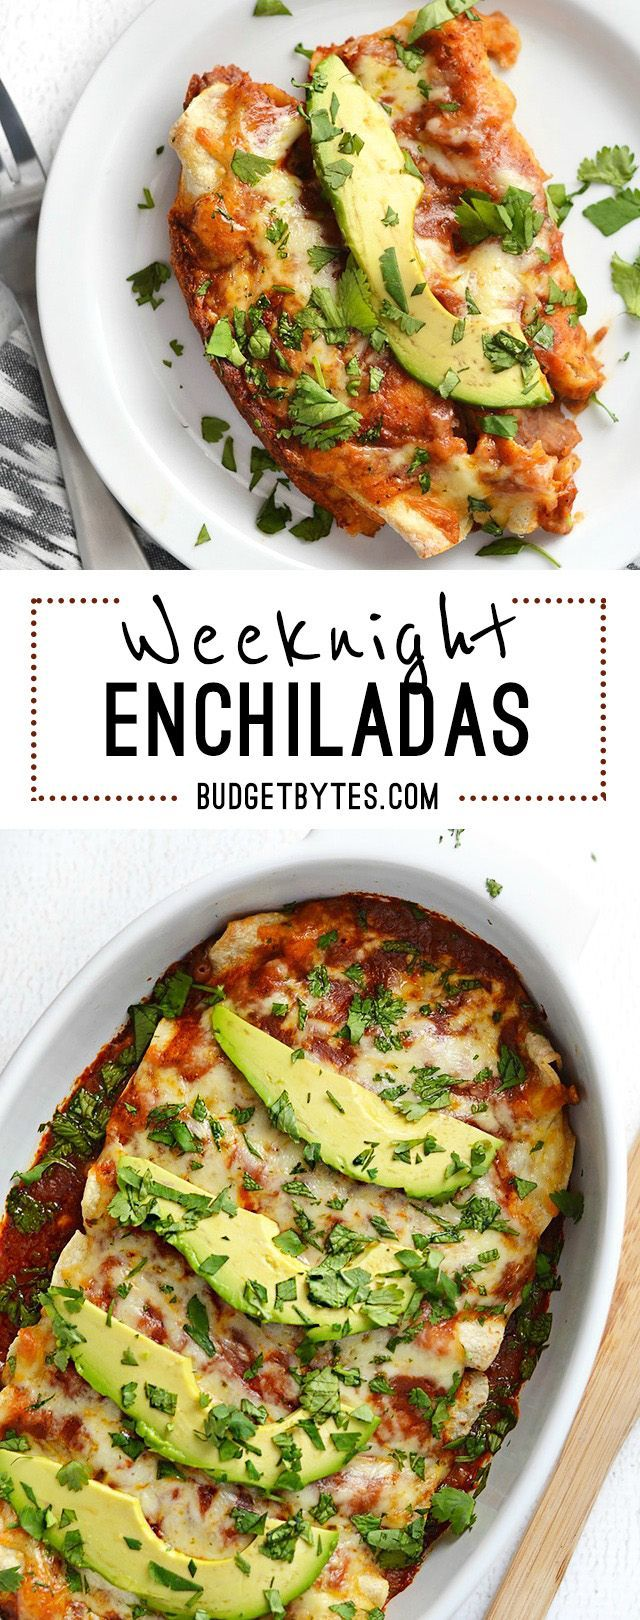 Why am I calling these enchiladas Weeknight Enchiladas? Because they're basic. Nothing frilly or fancy, just simple, basic bean and cheese enchiladas. But there are three things that, IMHO, turned the